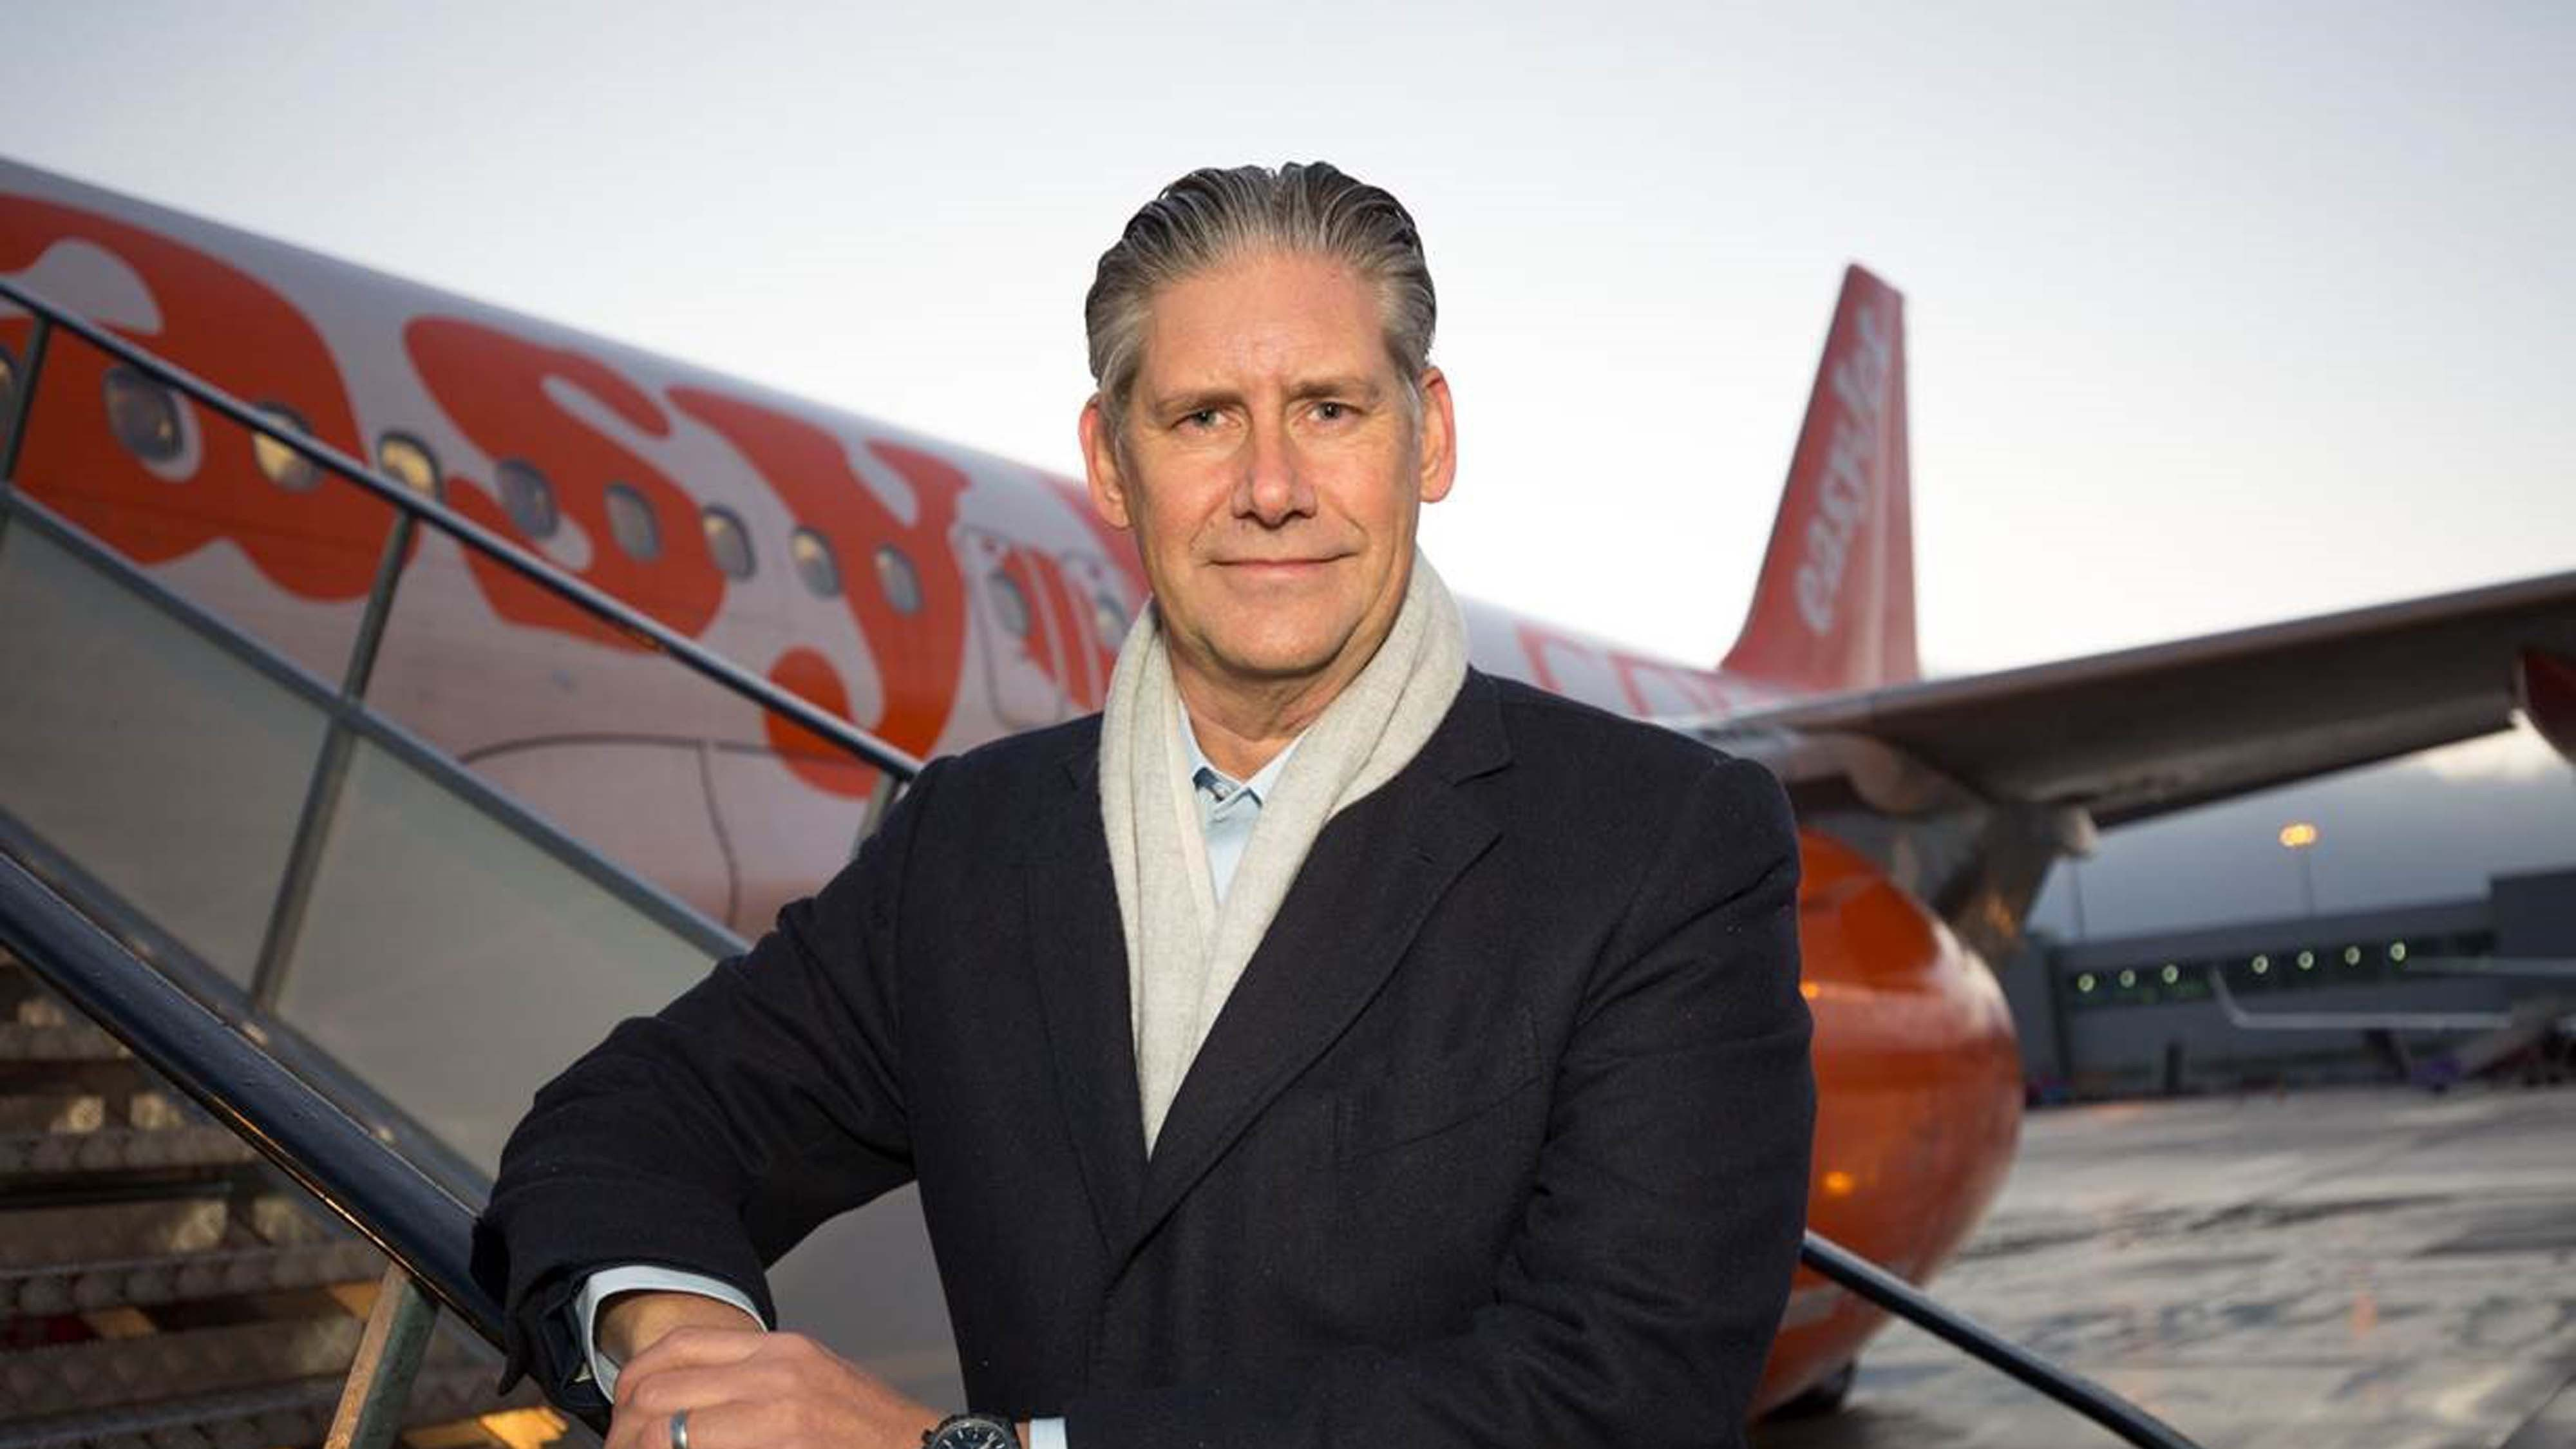 Easyjet CEO takes pay cut 'to address gender gap'